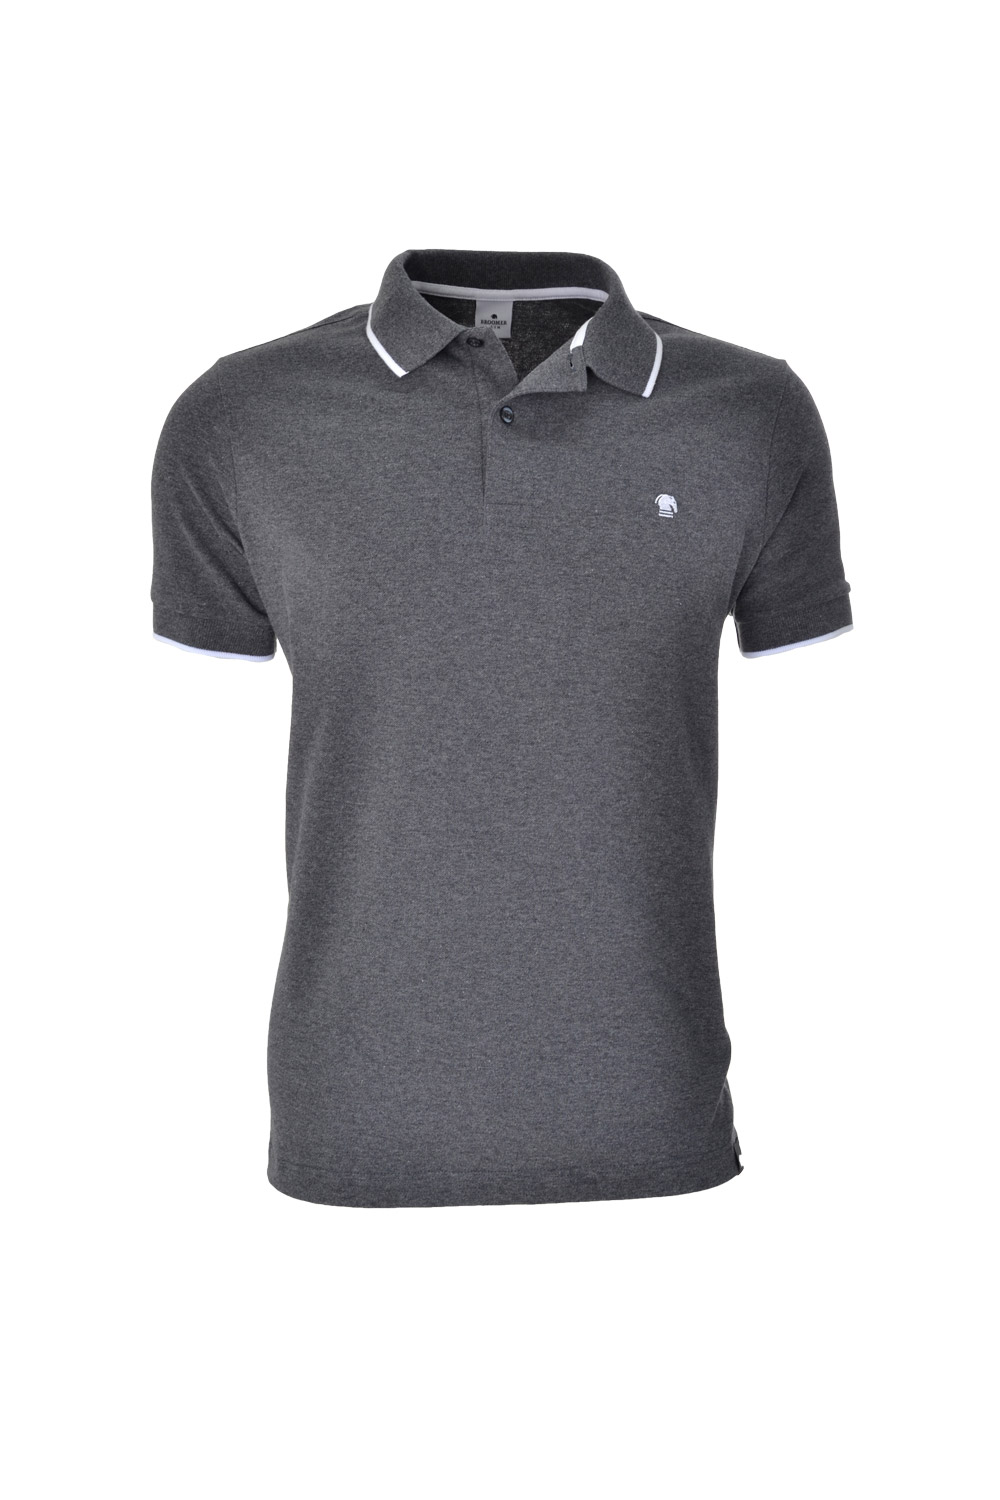 POLO MC CASUAL ALGODAO & ELASTANO STRETCH PIQUET COLOURS**